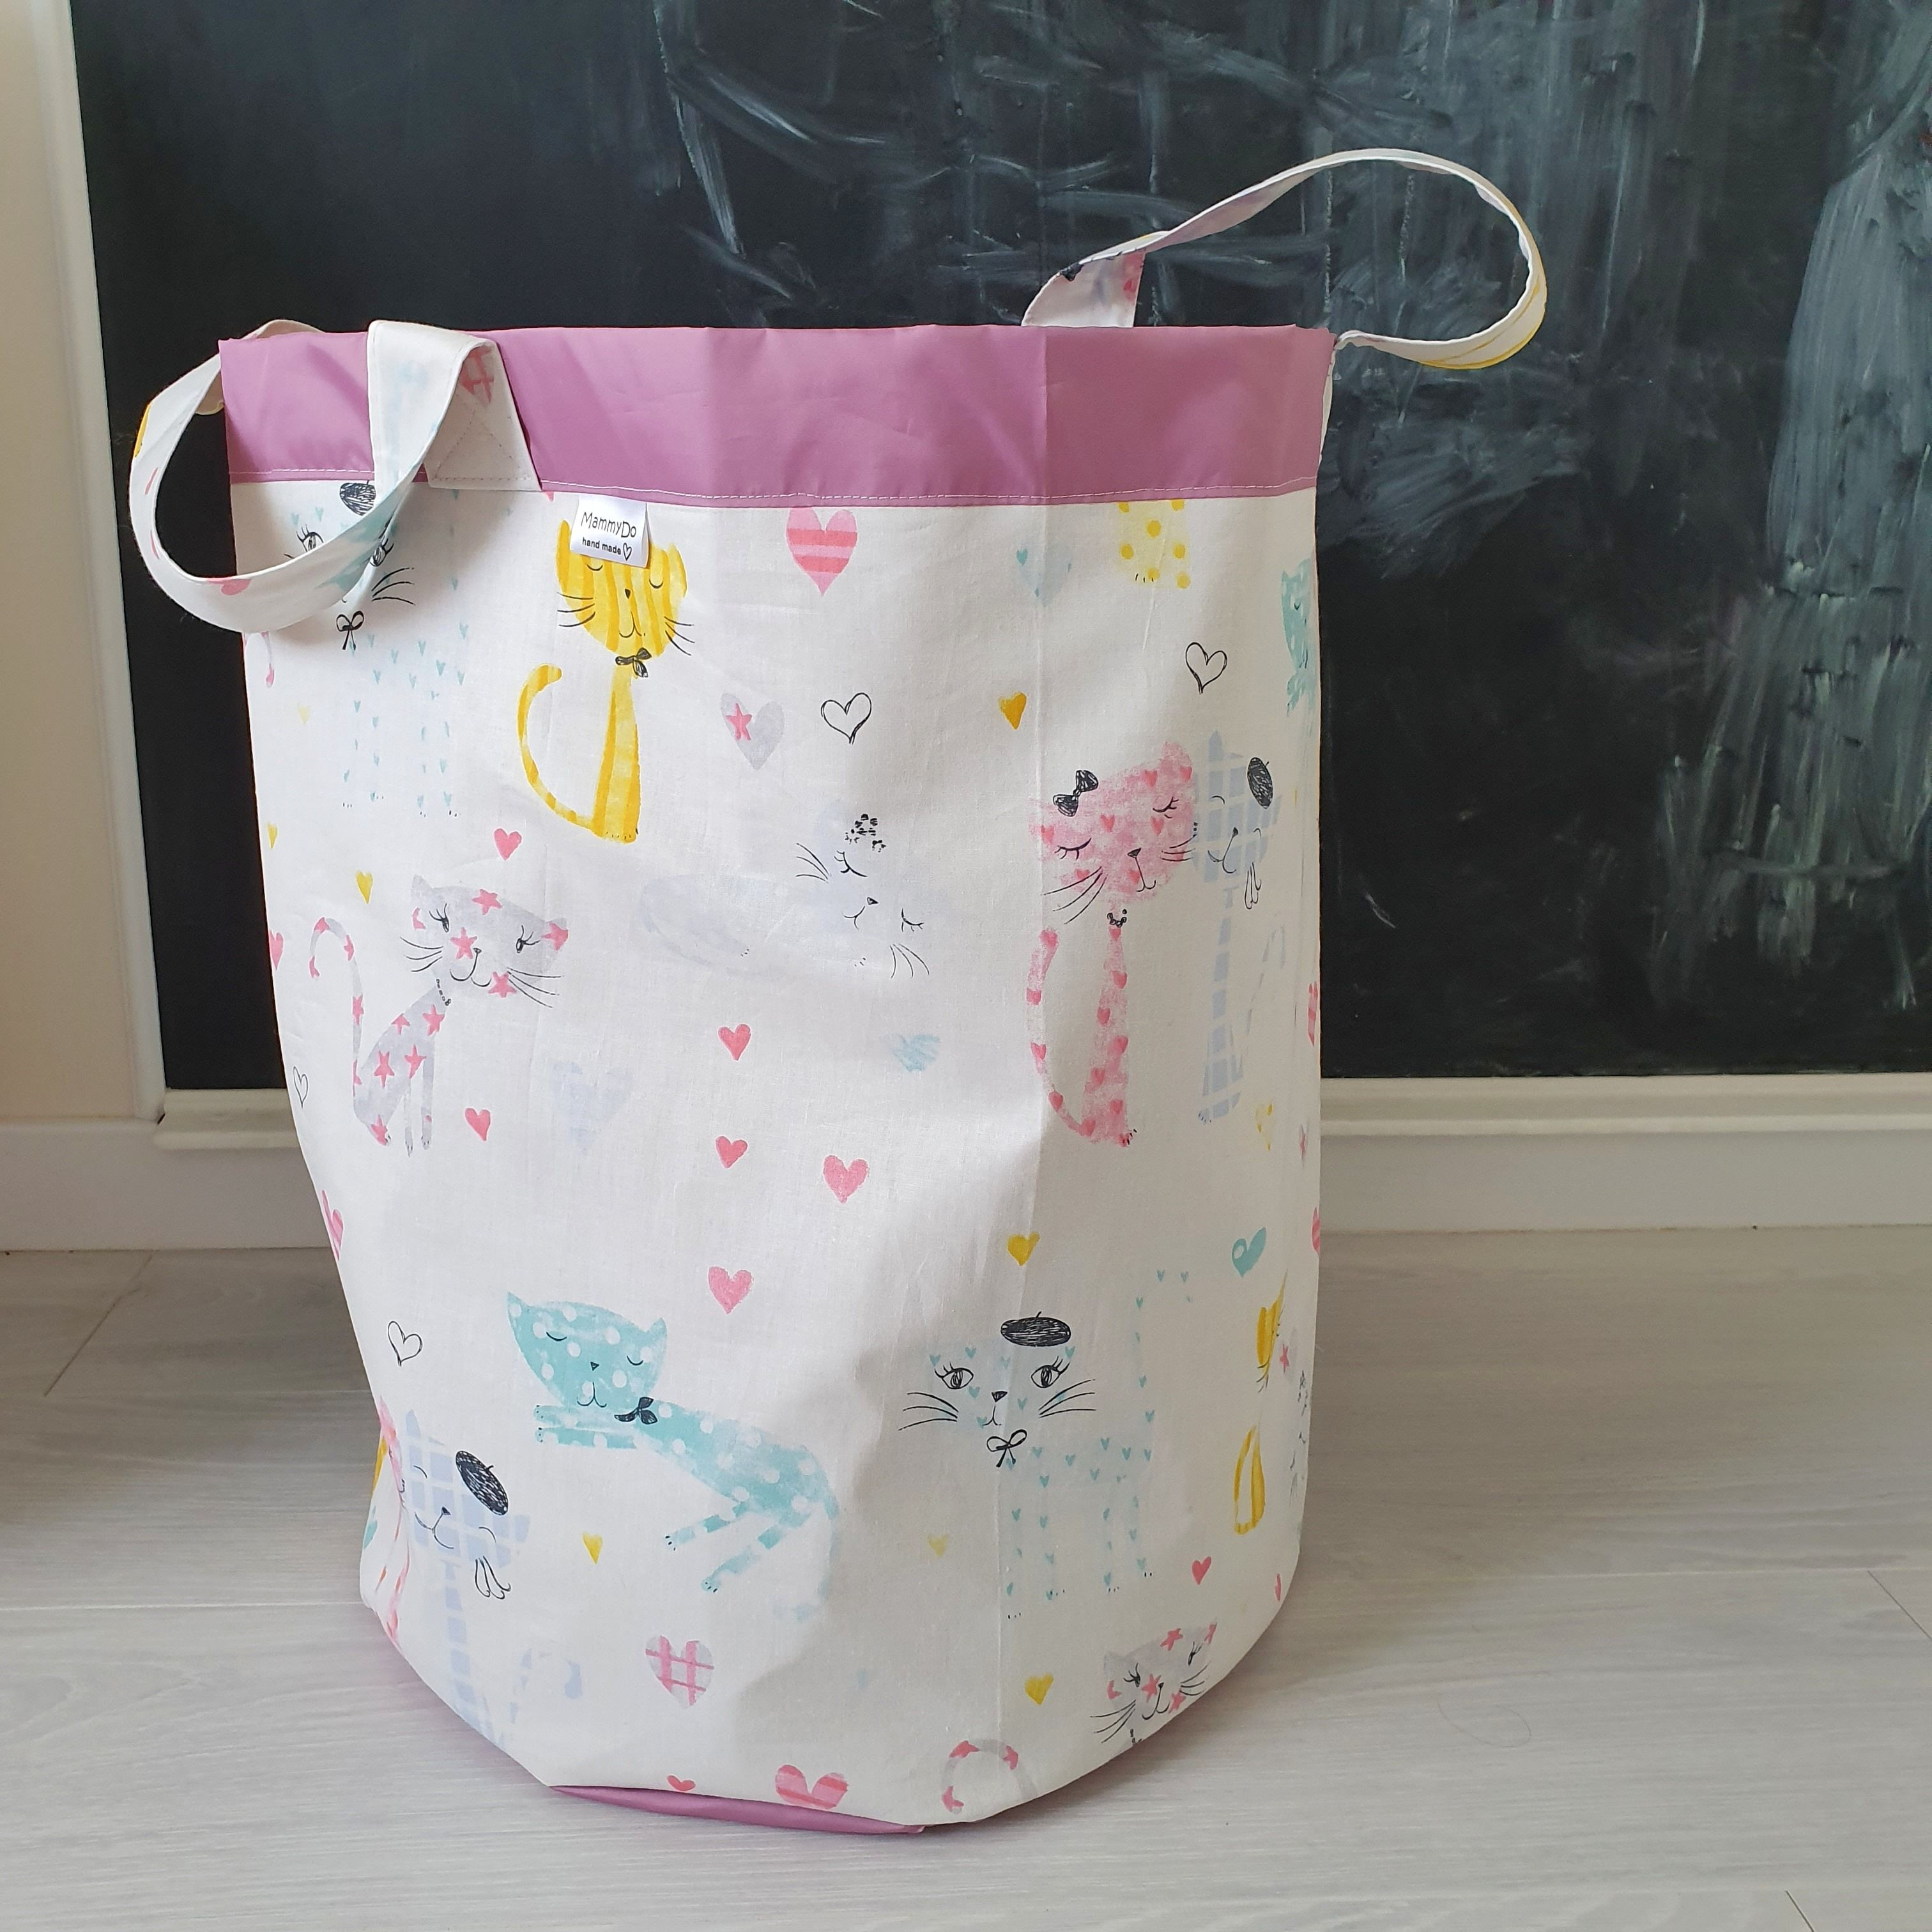 Fabric Basket Cats Print Toy Box Basket For Toys Toy Storage Fabric Storage Basket Laundry Basket Storage Bin Laundry Bag Gift For Baby Toy Storage Bags Fabric Storage Baskets Fabric Baskets